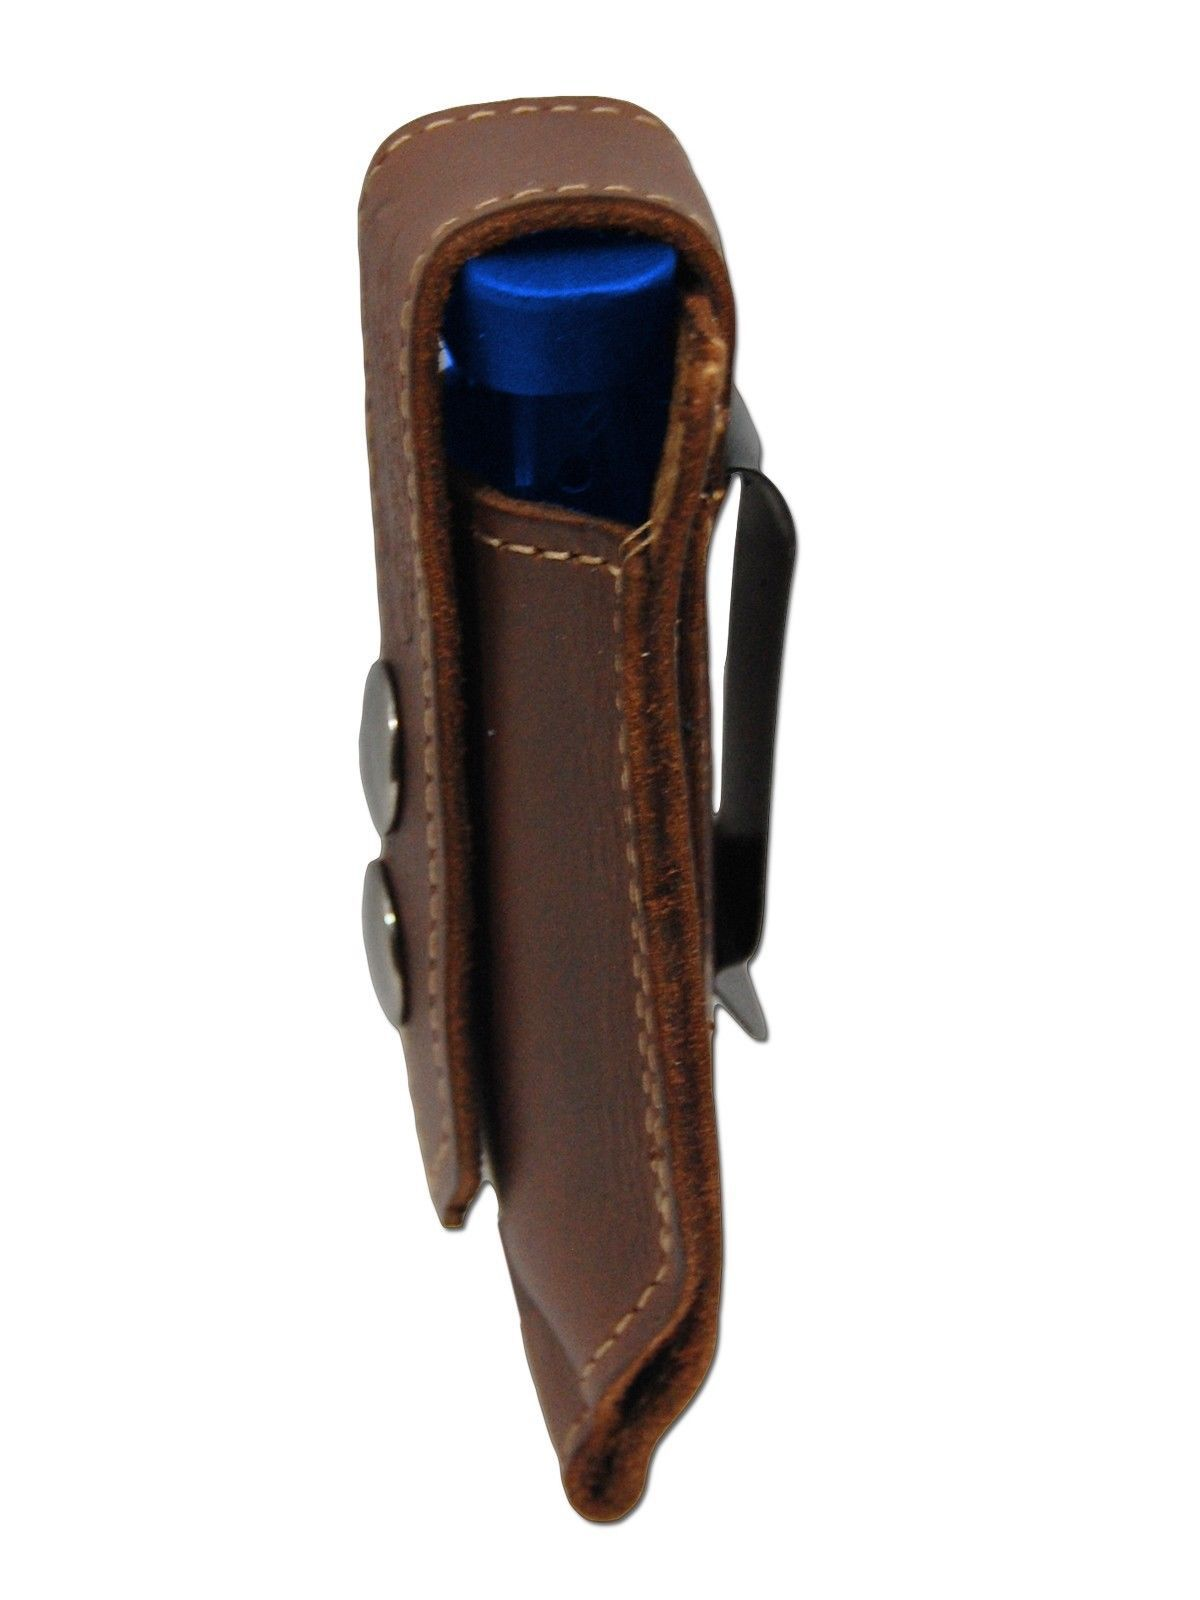 NEW Barsony Brown Leather Single Mag Pouch for Sig-Sauer Walther Mini 22 25 380